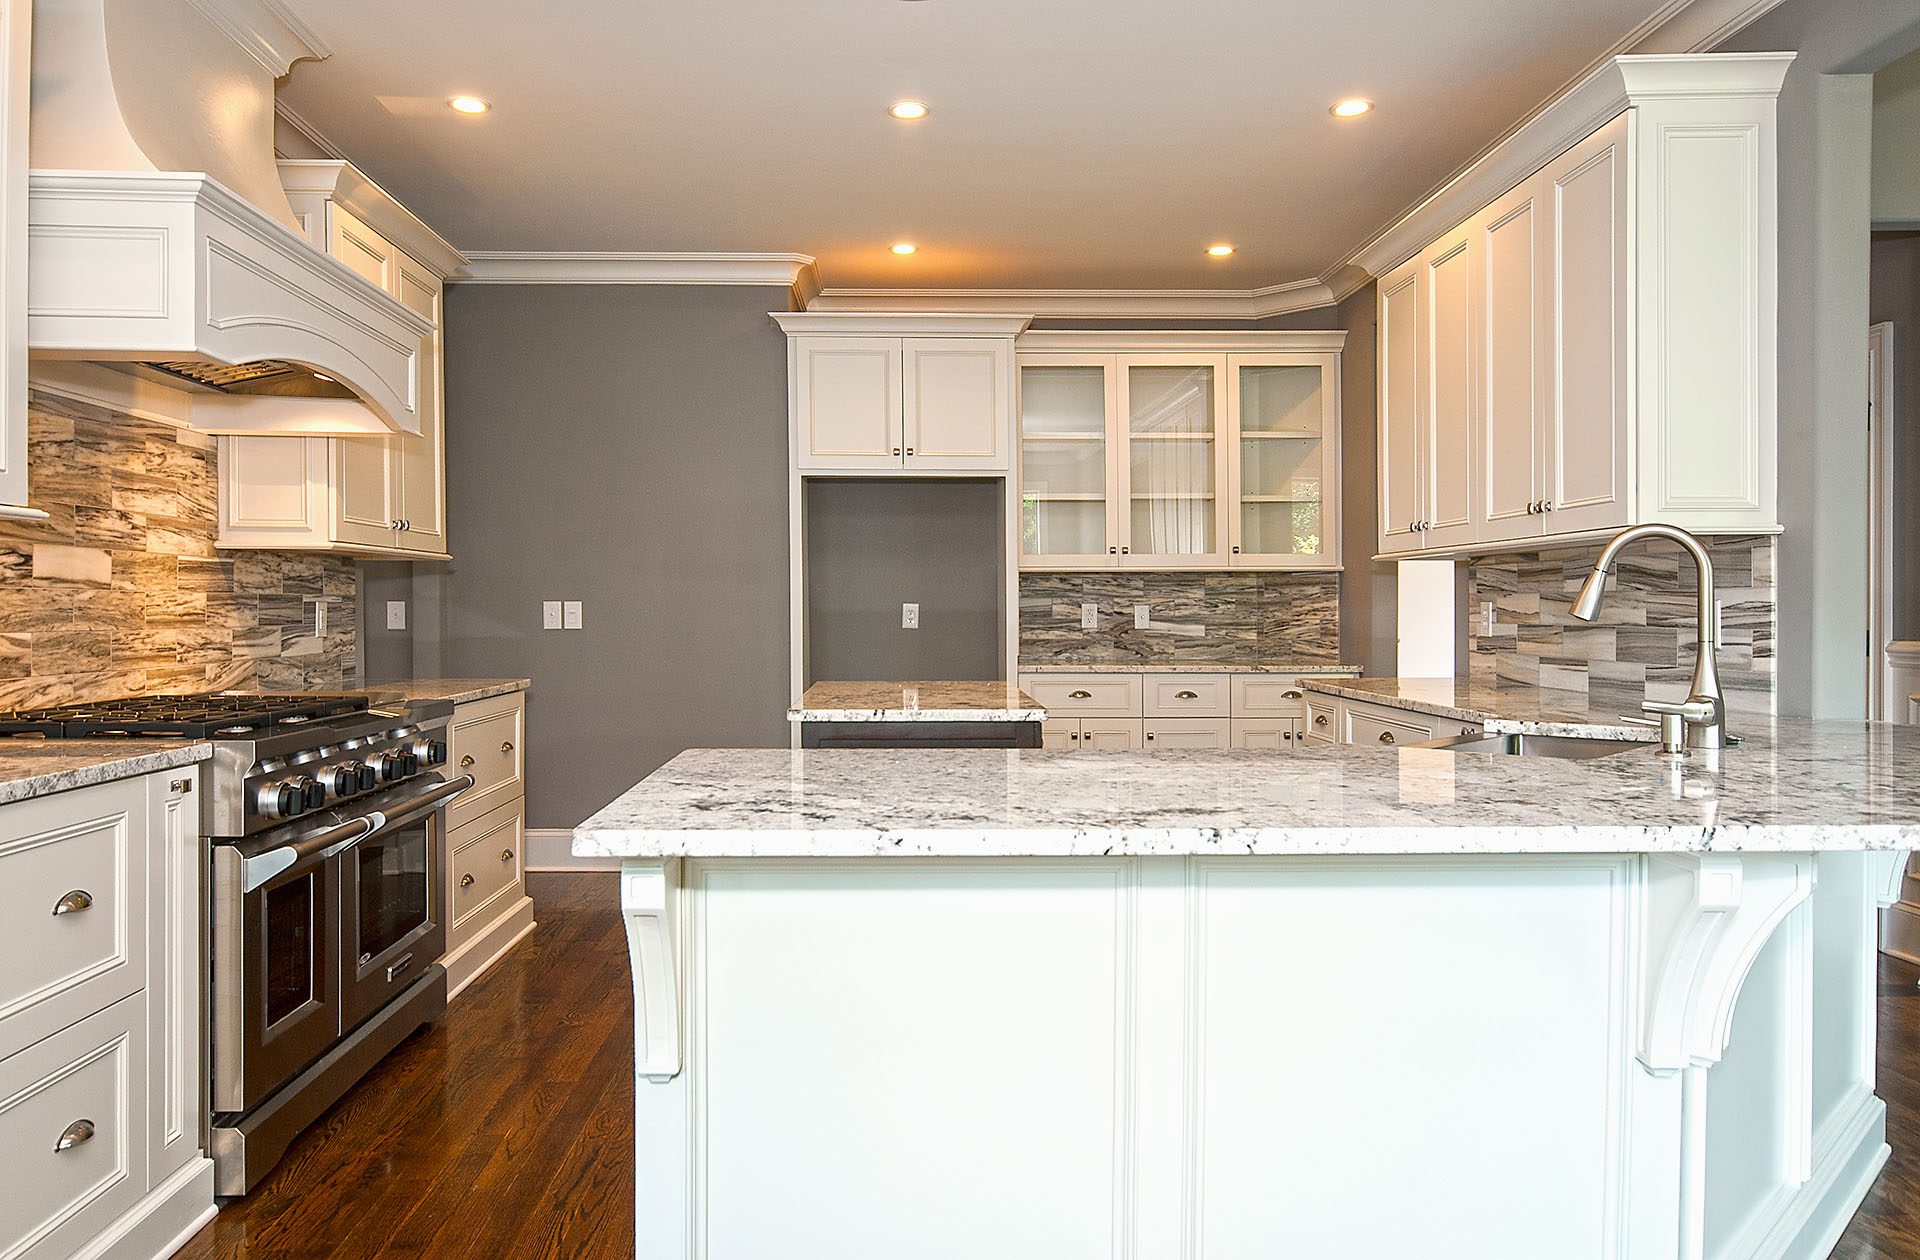 Abbey kitchens and bathrooms - Glen Abbey In Greer Sc